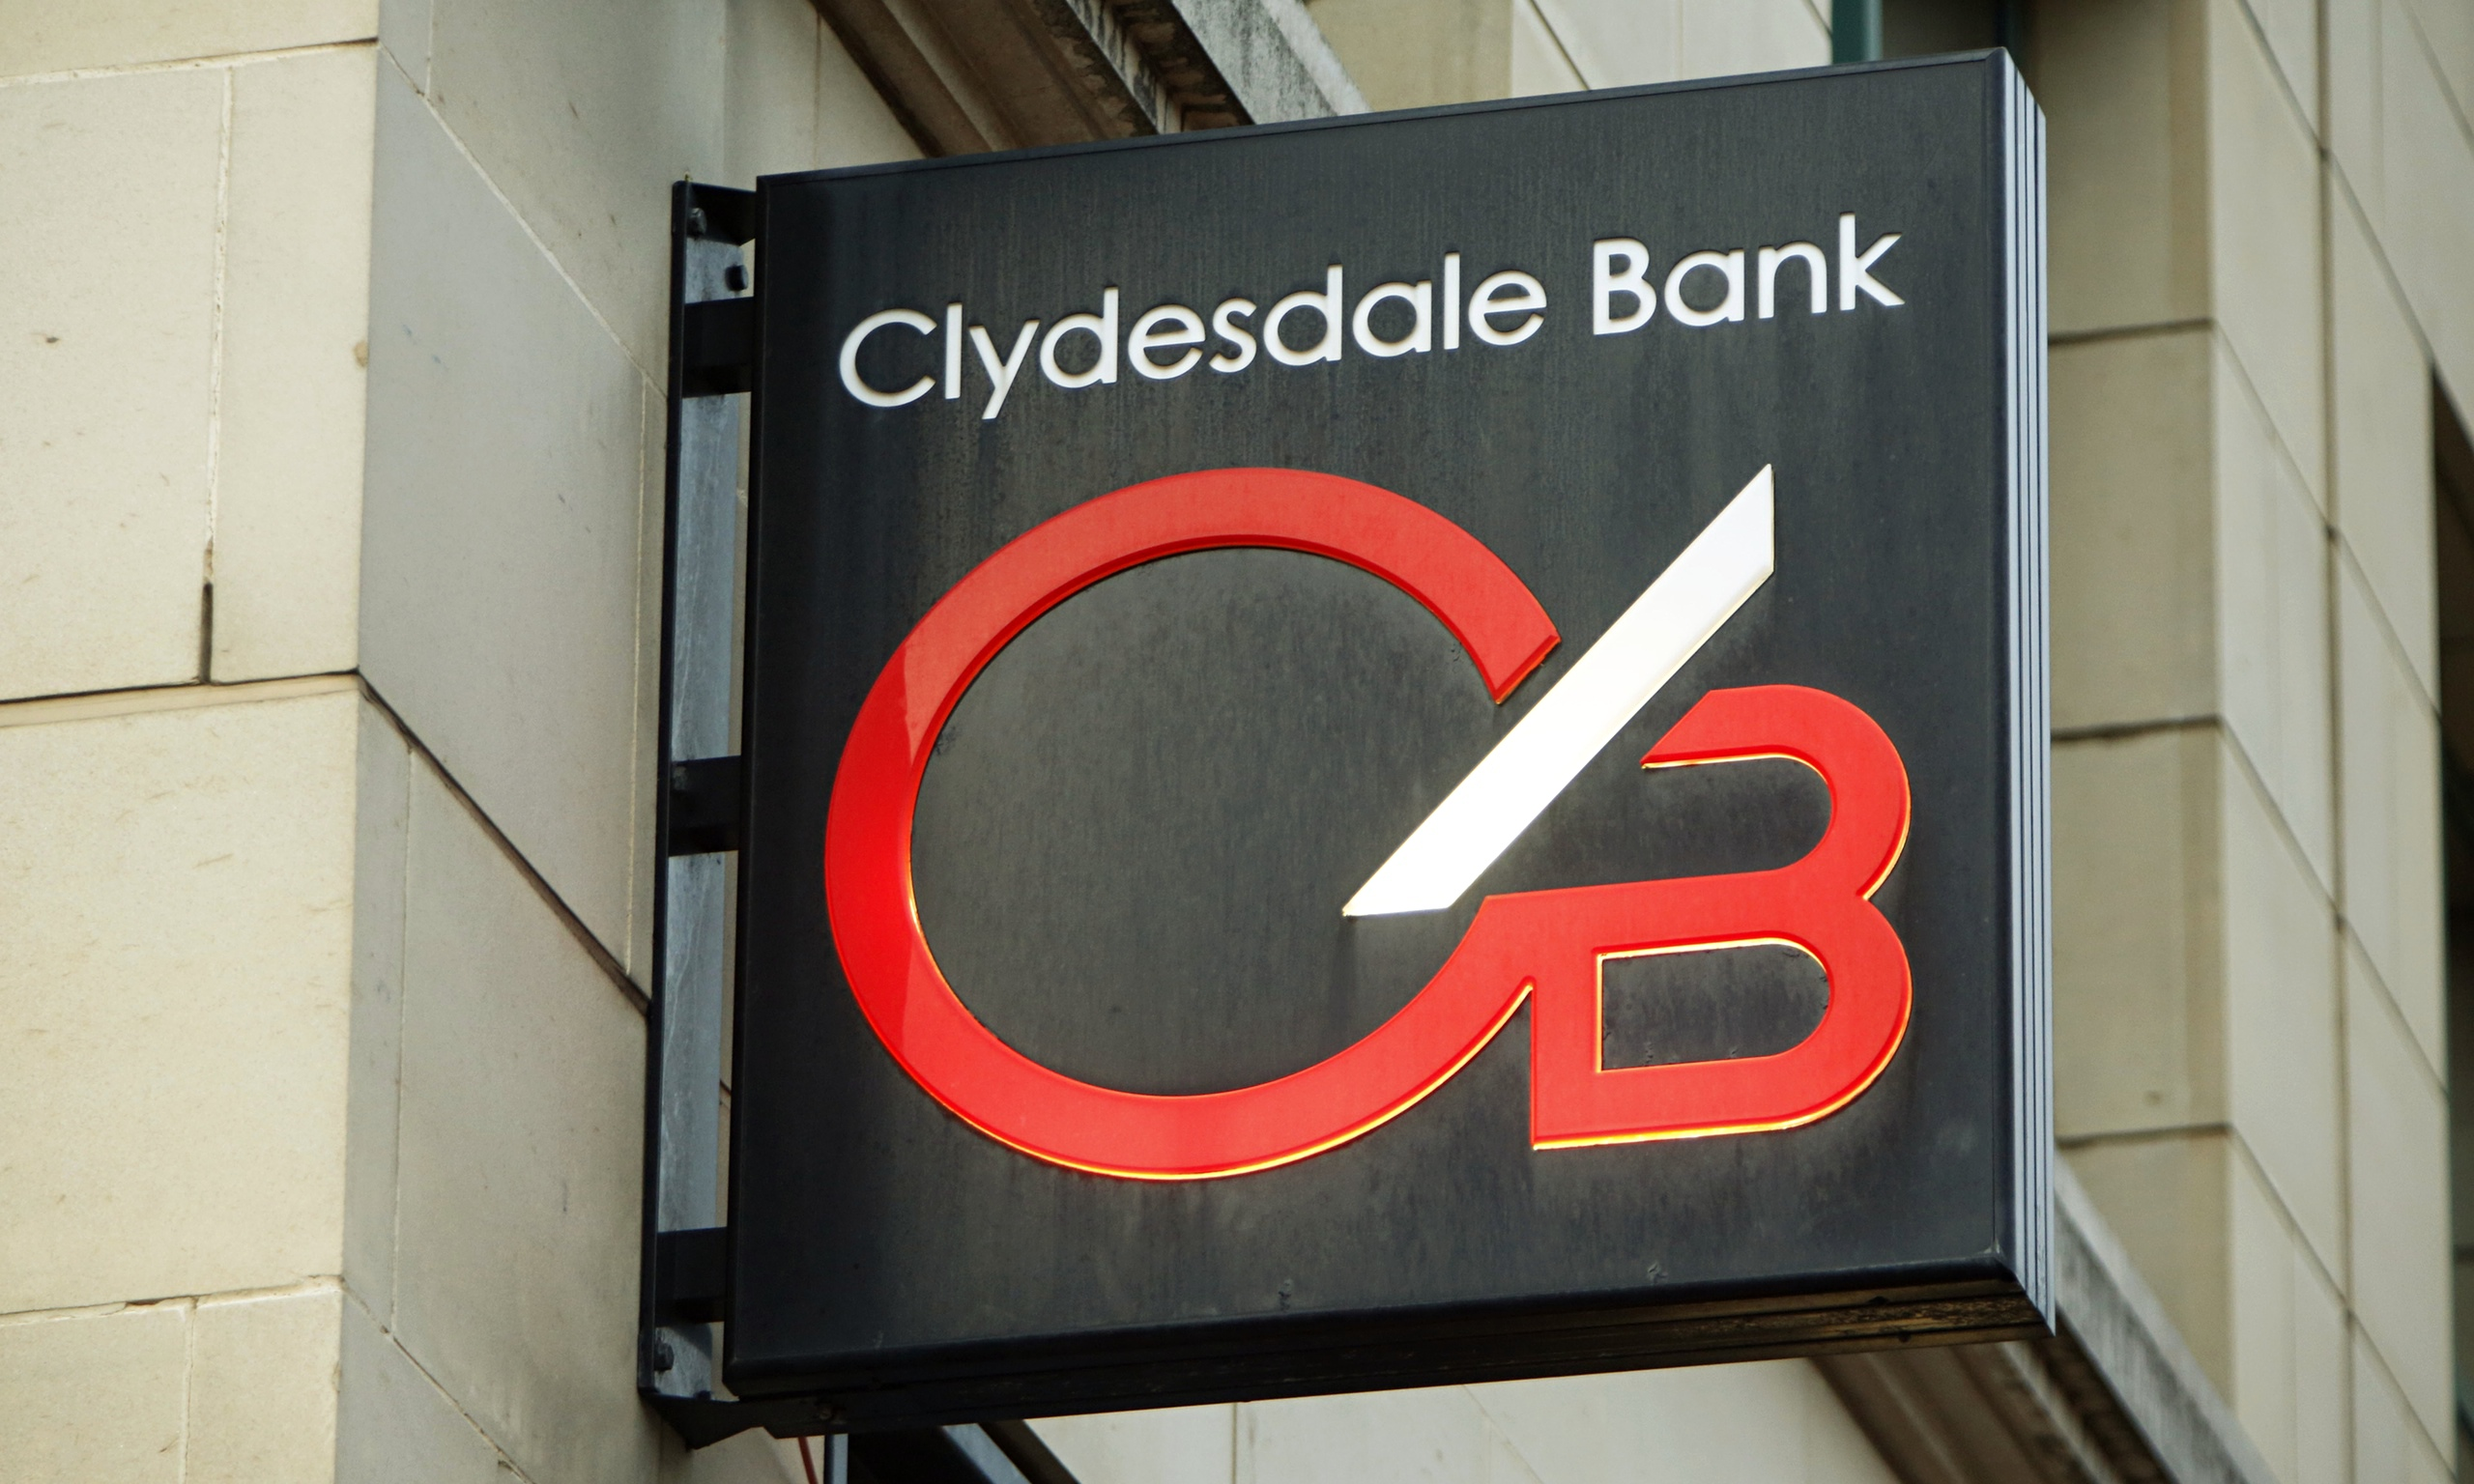 Clydesdale Bank Branches In London